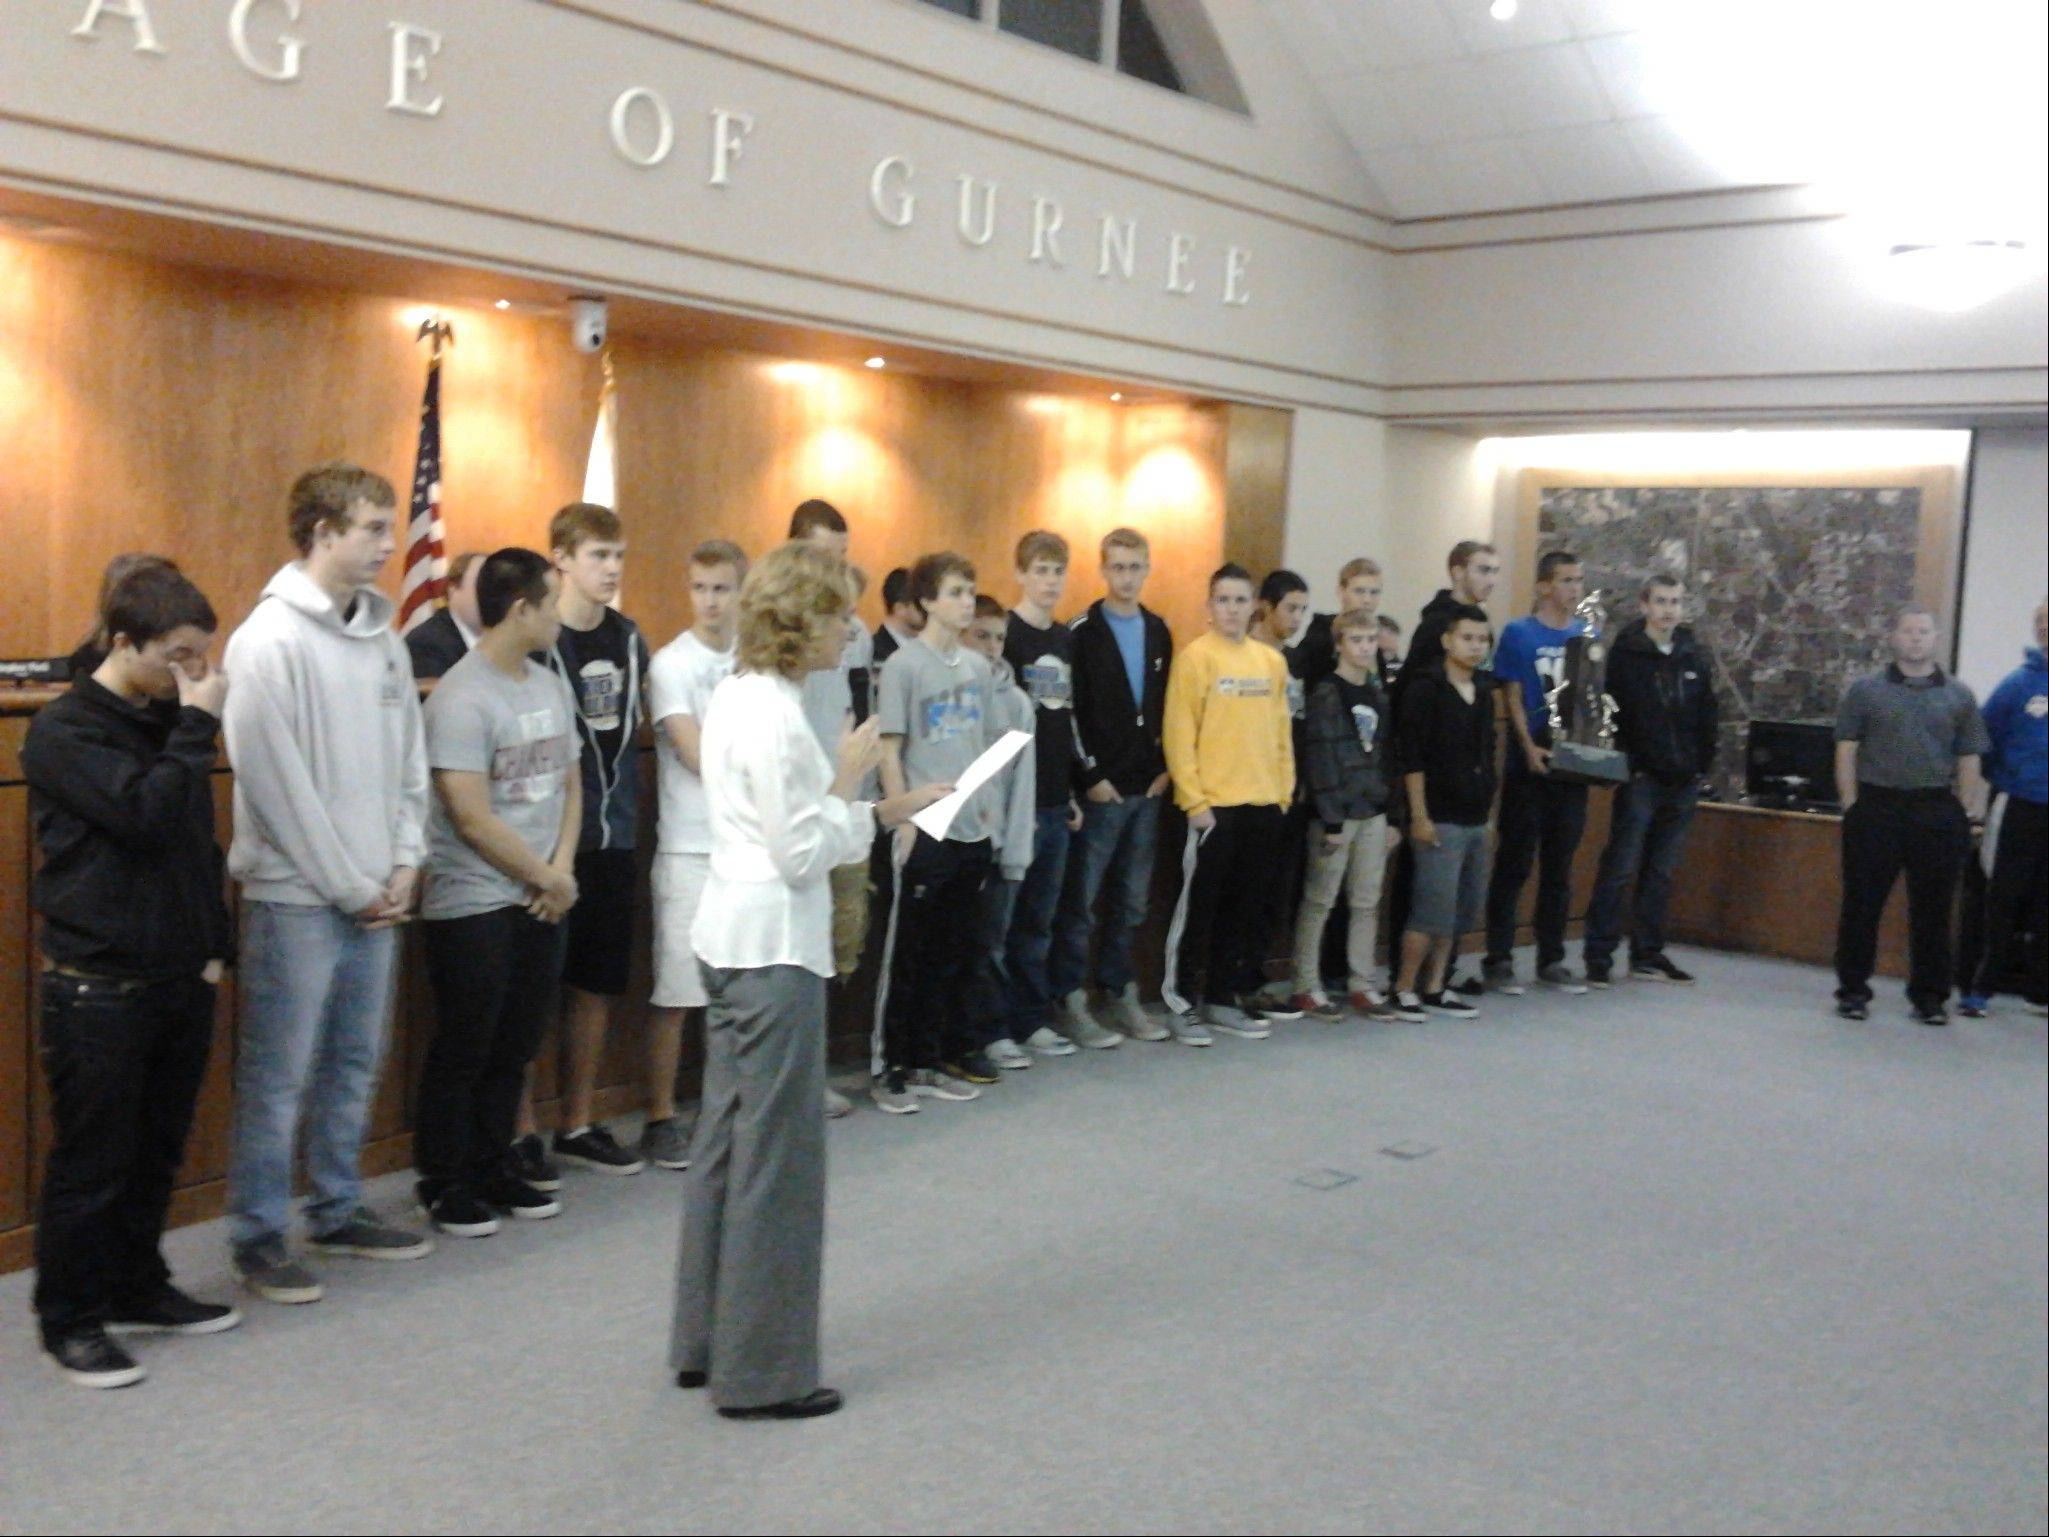 Gurnee Mayor Kristina Kovarik offered congratulations to Warren Township High School's first state champion boys soccer team during a village board meeting Monday evening.